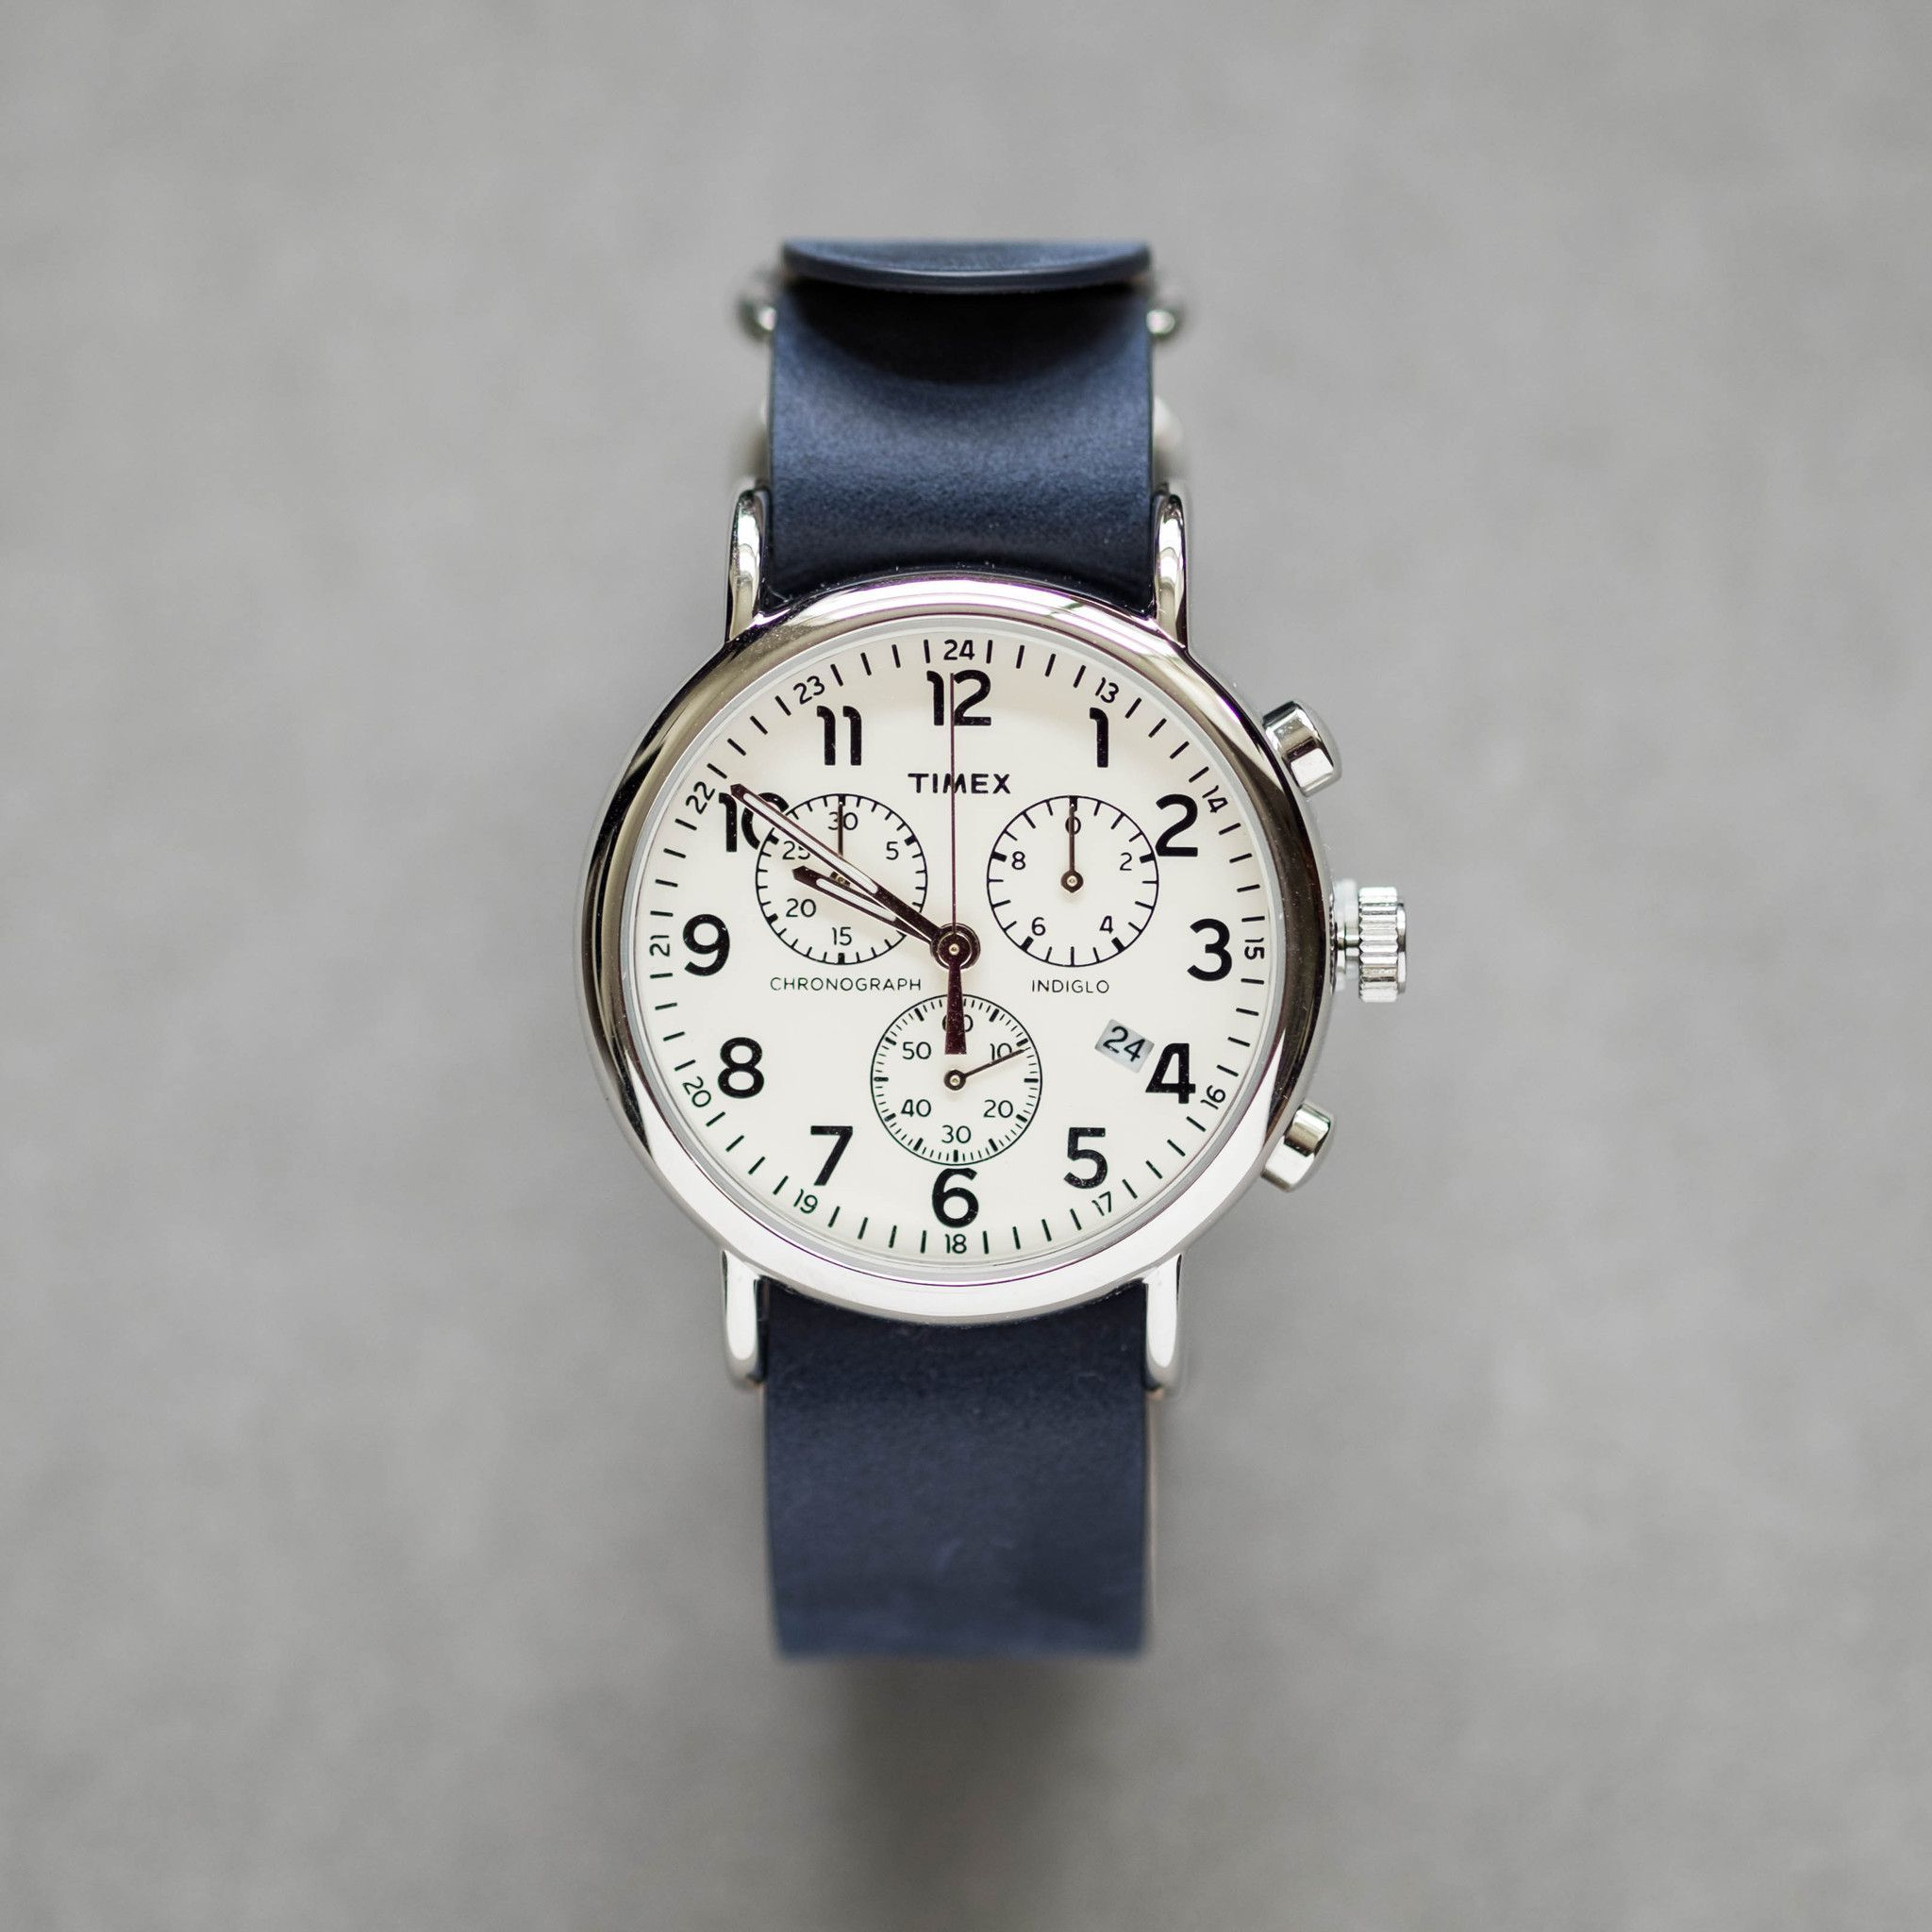 5b8604e87 Timex Weekender Chronograph Watch - Blue Leather Strap | Products ...